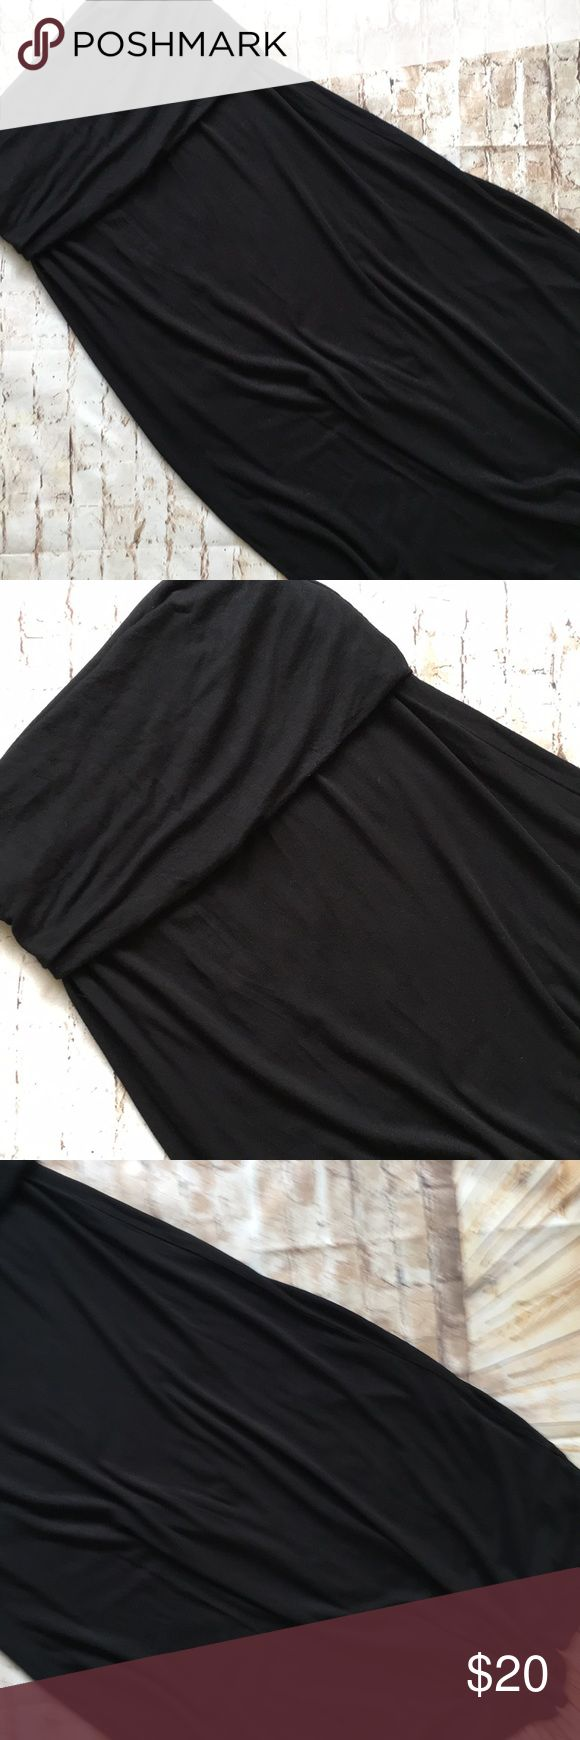 """Cotton Therapy Black Maxi Skirt Great condition Super cute  Maxi size Medium  41"""" long  14"""" stretchy waist  Adjustable band Flat measurements No rips tears or stains  Non smoking environment💕 Cotton Therapy Skirts Maxi"""